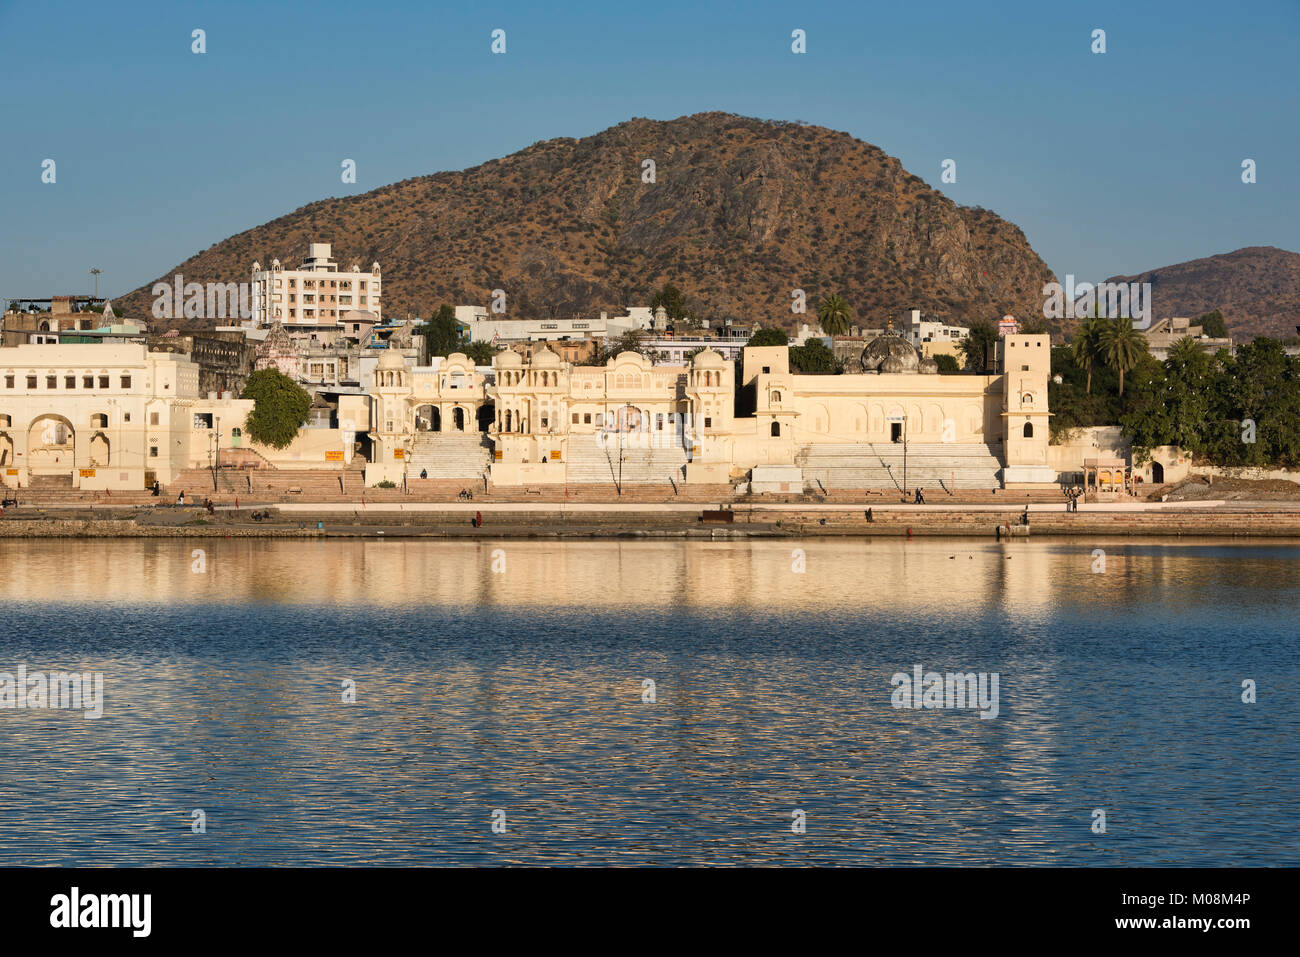 Gleaming Gwalior Ghat in the holy town of Pushkar, Rajasthan, India - Stock Image